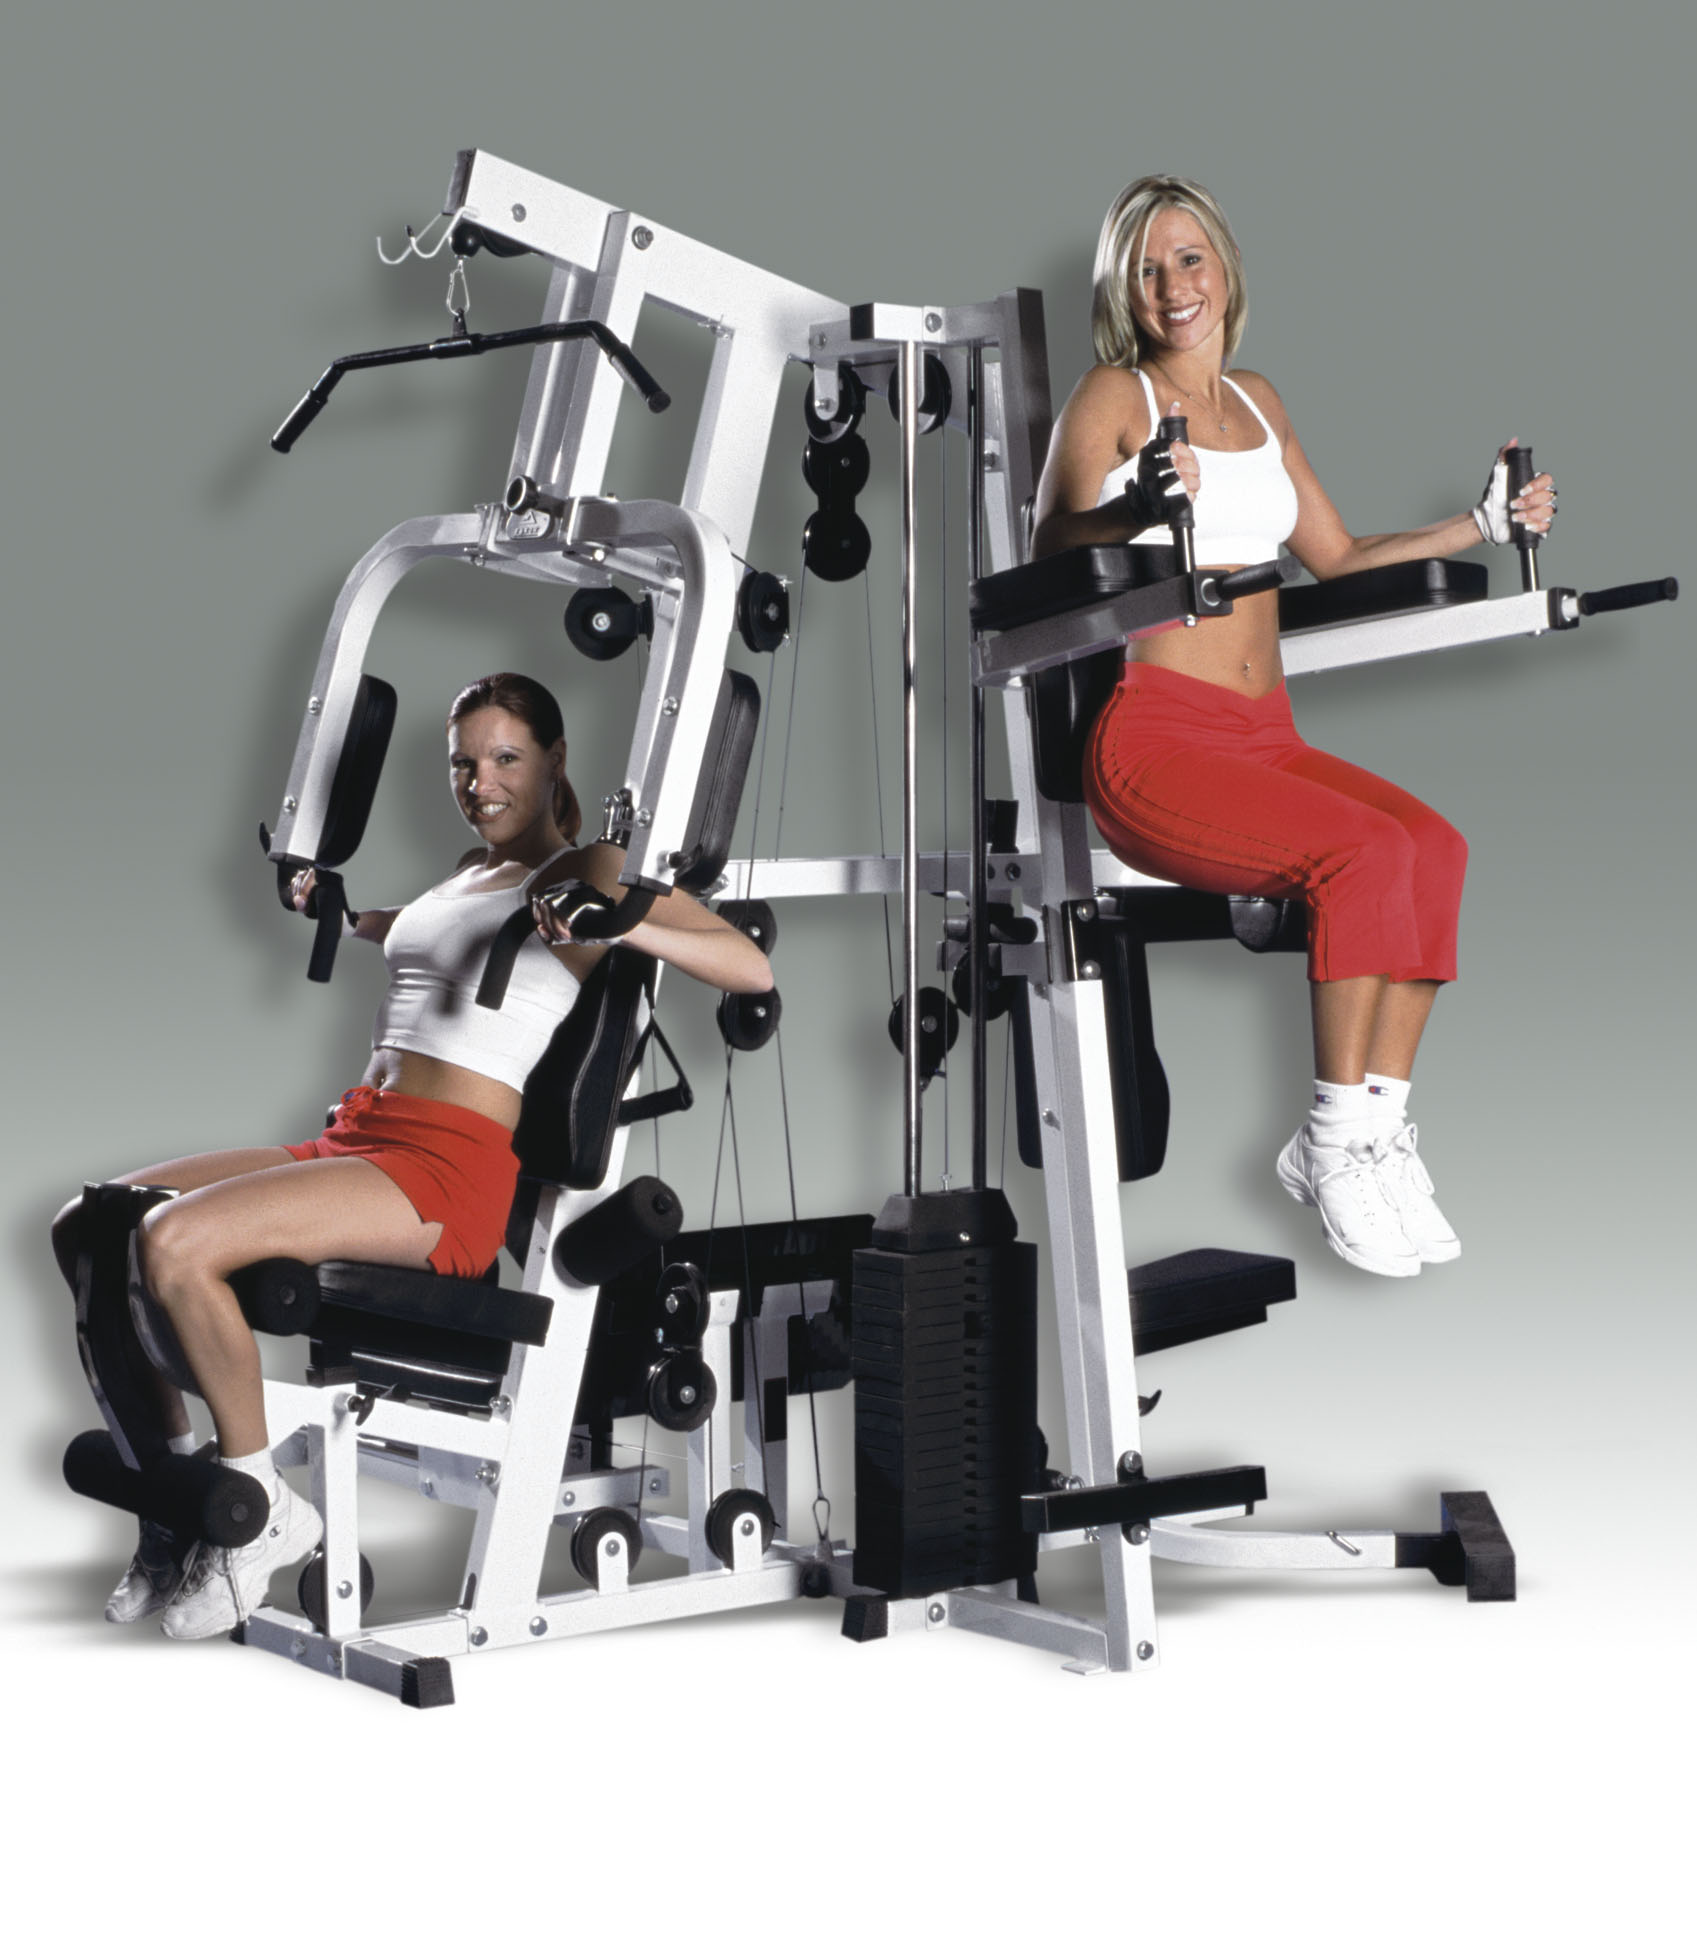 home gym equipment in petaluma ca exercise equipment warehouse rh  exerciseequipmentwarehouse com most popular home gym fa1901708